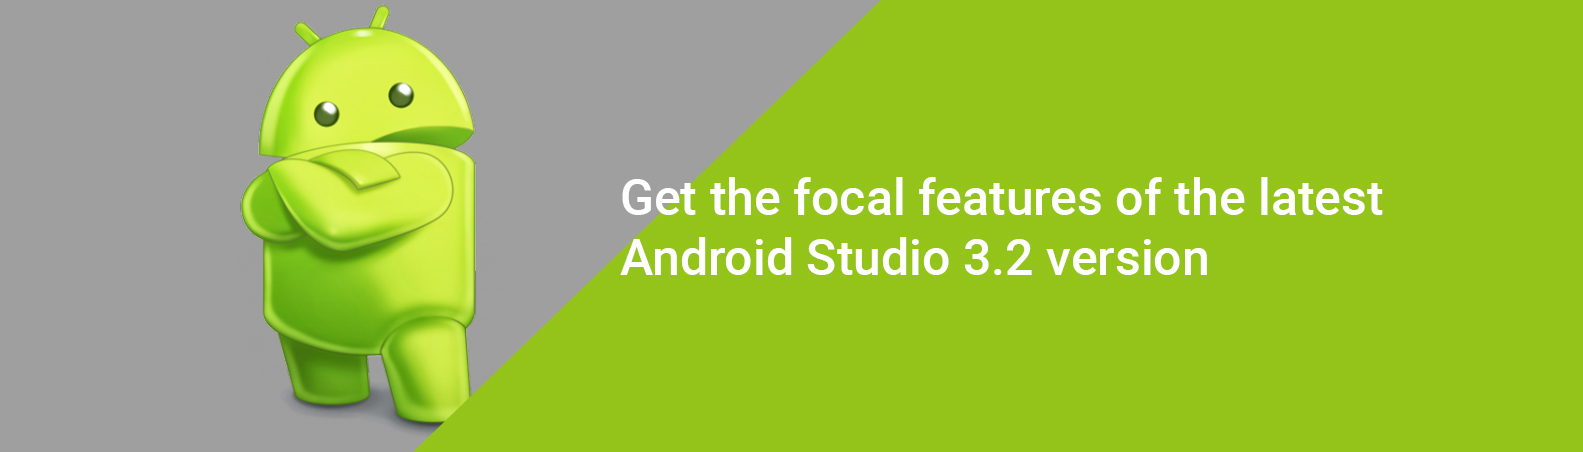 Get the focal features of the latest Android Studio 3 2 version